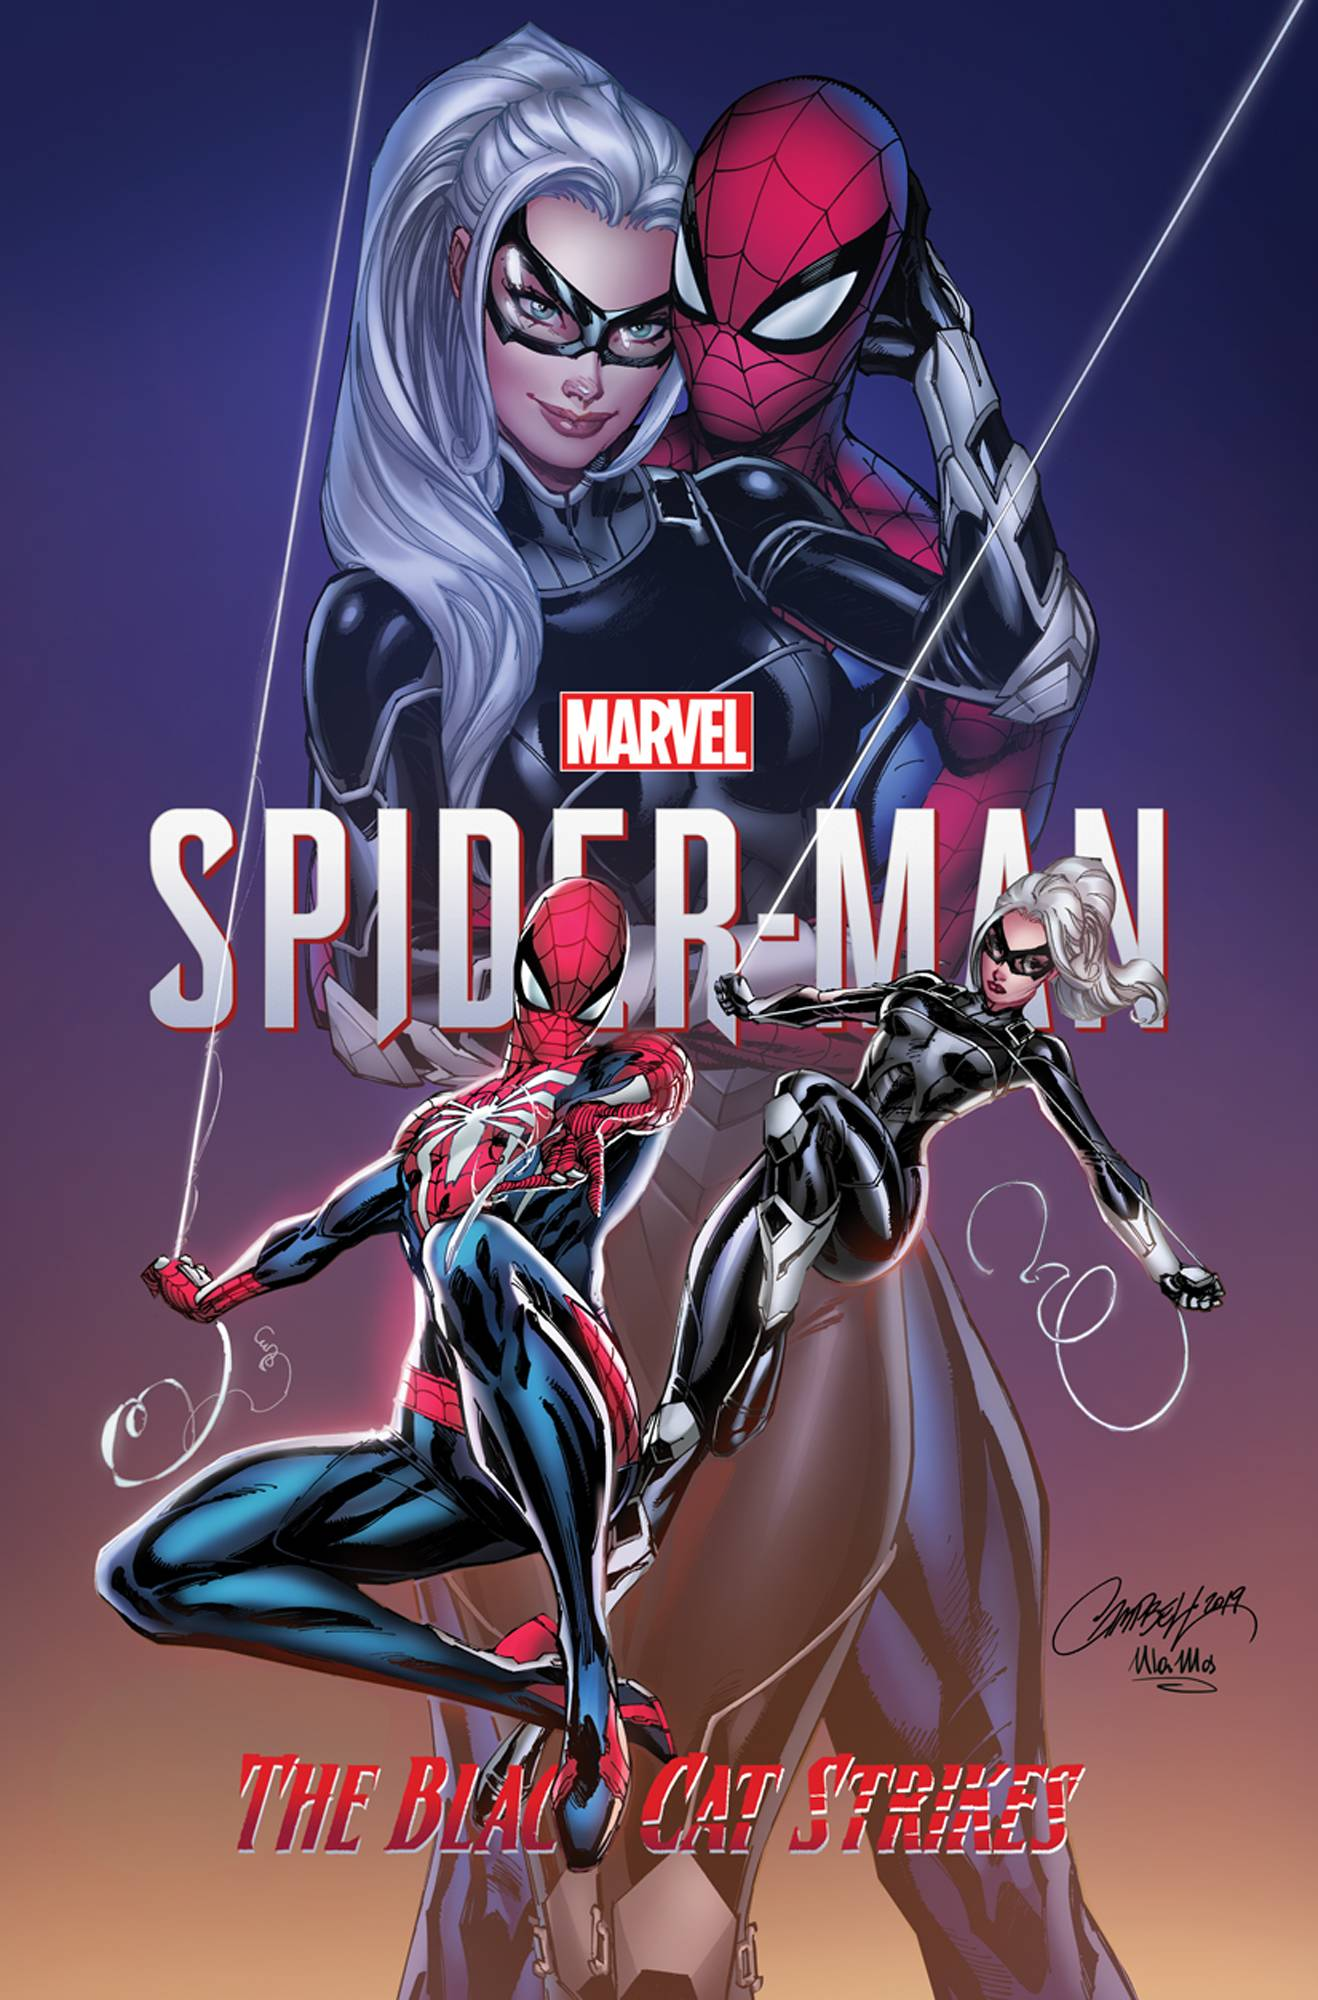 MARVELS SPIDER-MAN BLACK CAT STRIKES #1 (OF 5) JS CAMPBELL V